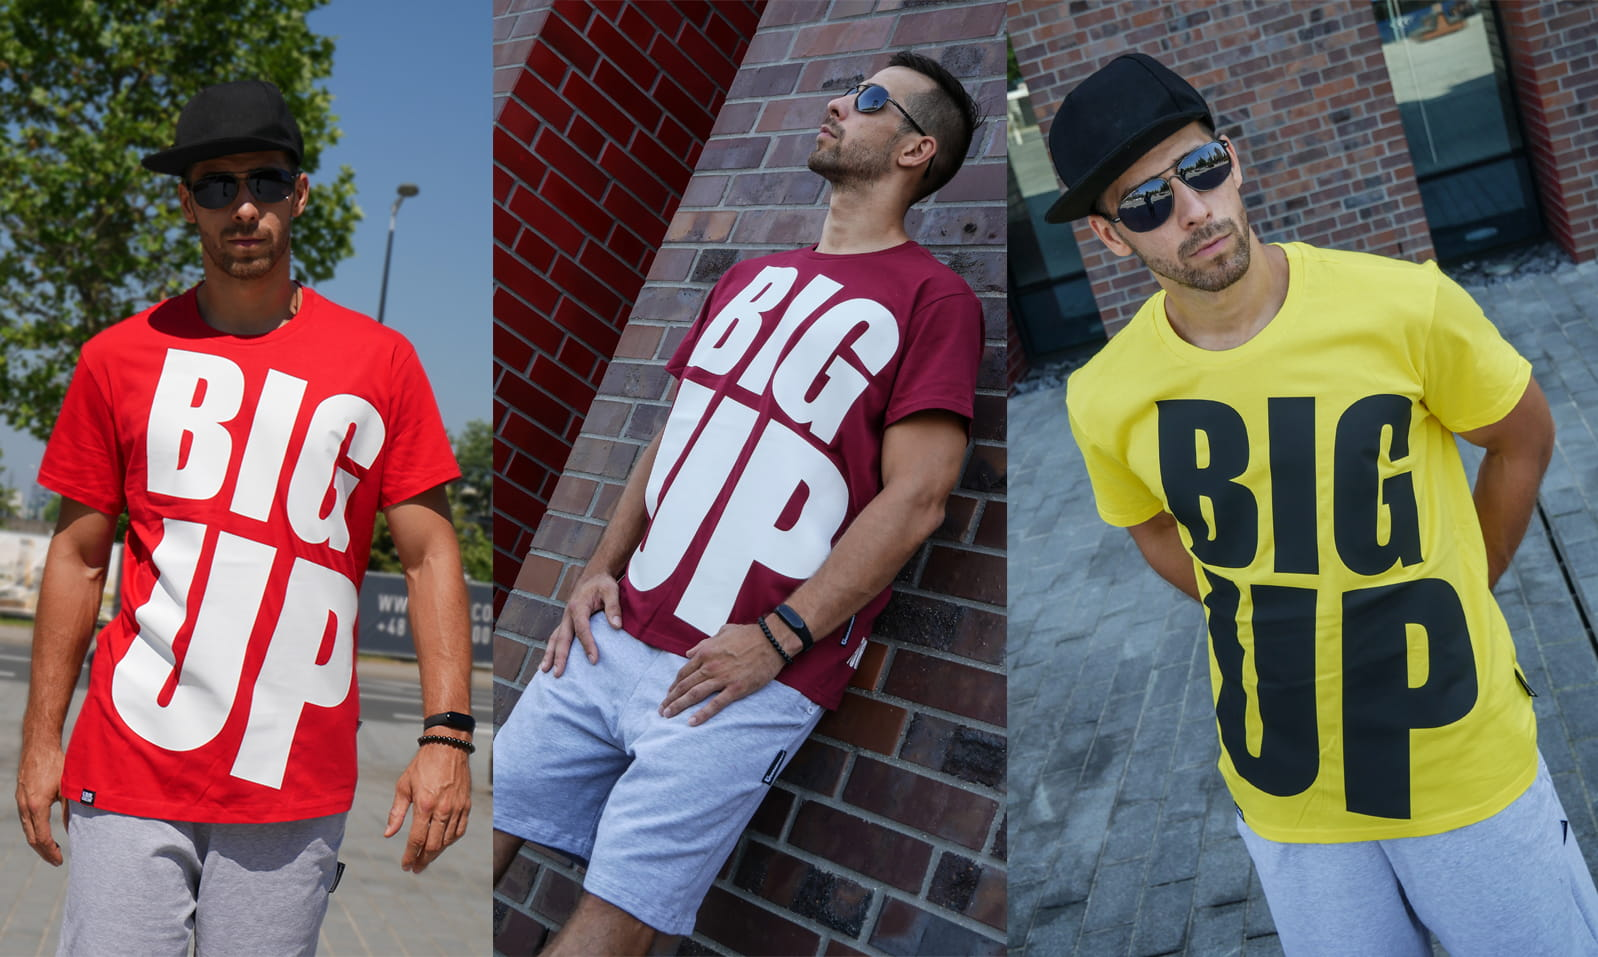 HIP HOP T-SHIRTS BIG UP